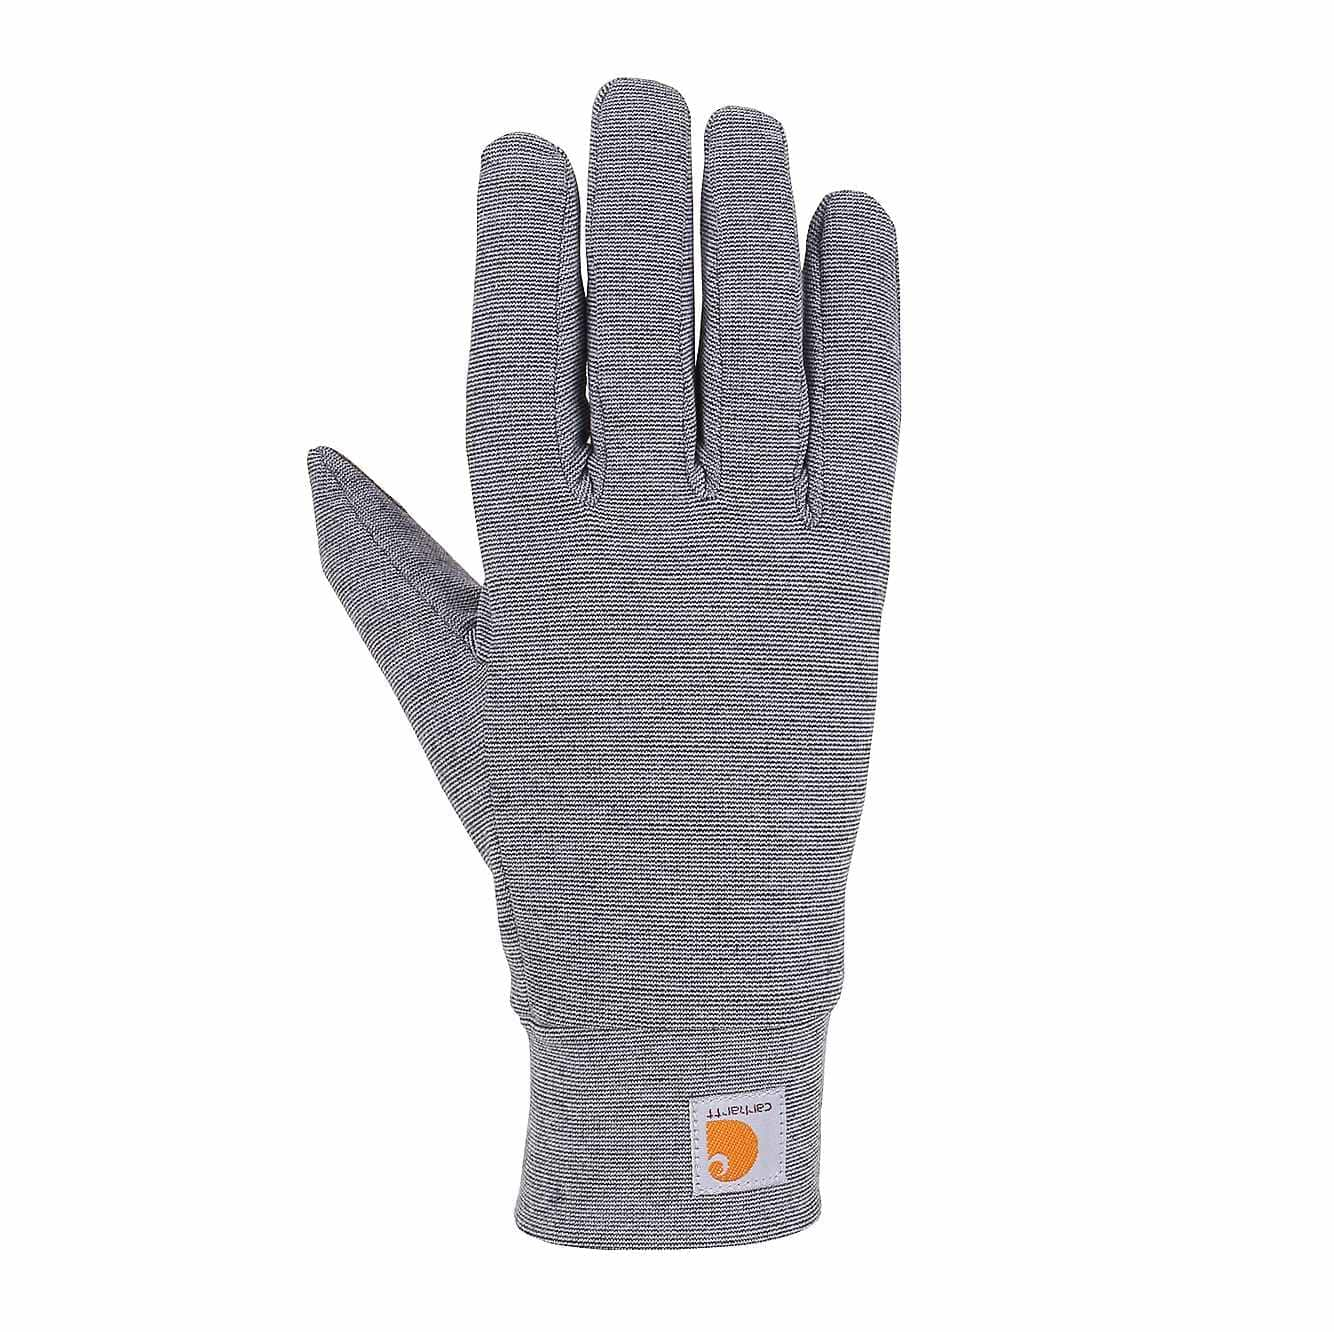 Picture of Carhartt Force® Heavyweight Liner Knit Glove in Shadow Gray